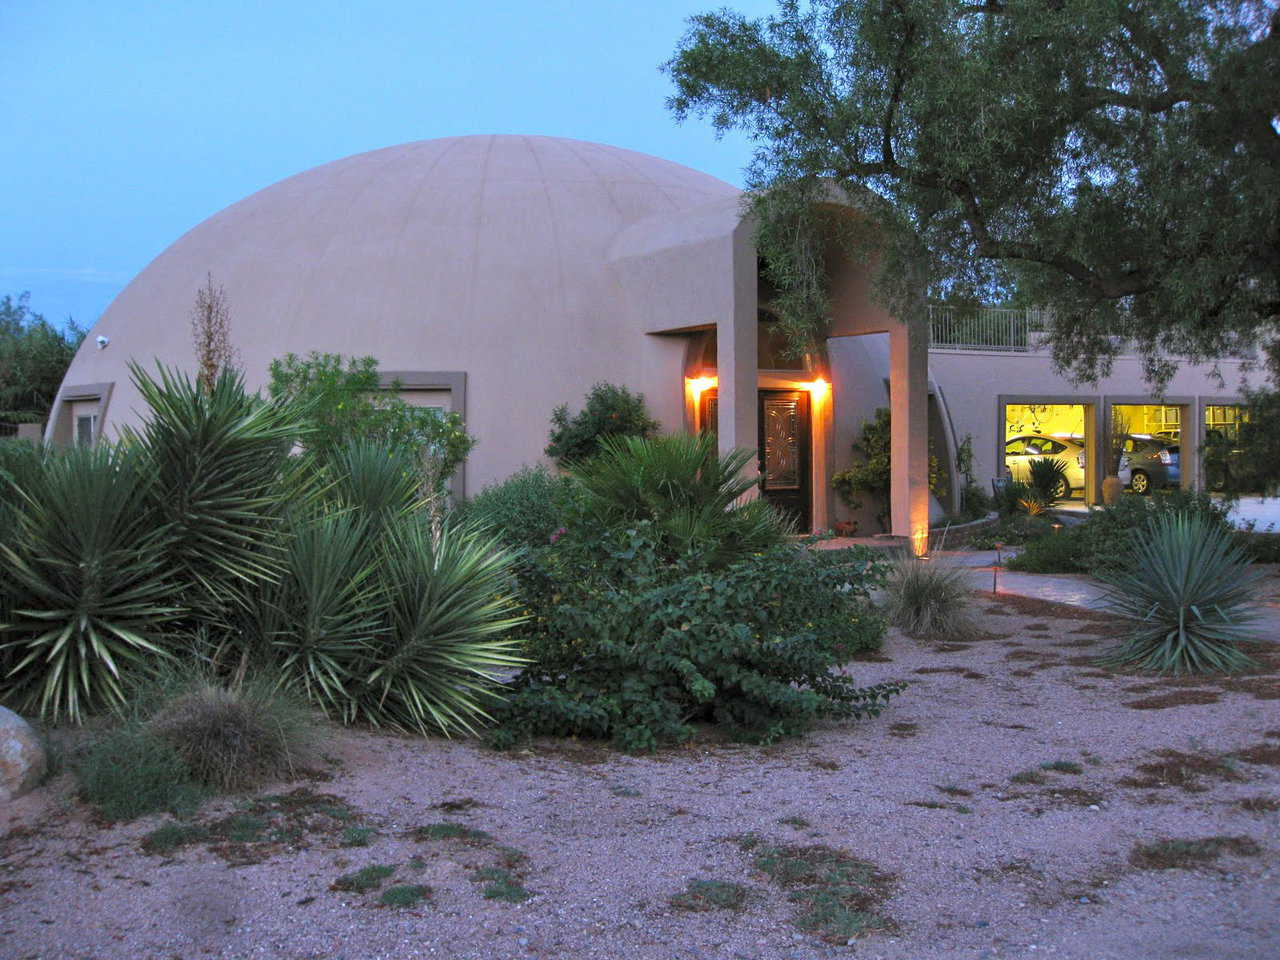 Stout Residence in Mesa, AZ – Carol and Roger Stout planned their fabulous Monolithic Dome home for five years.